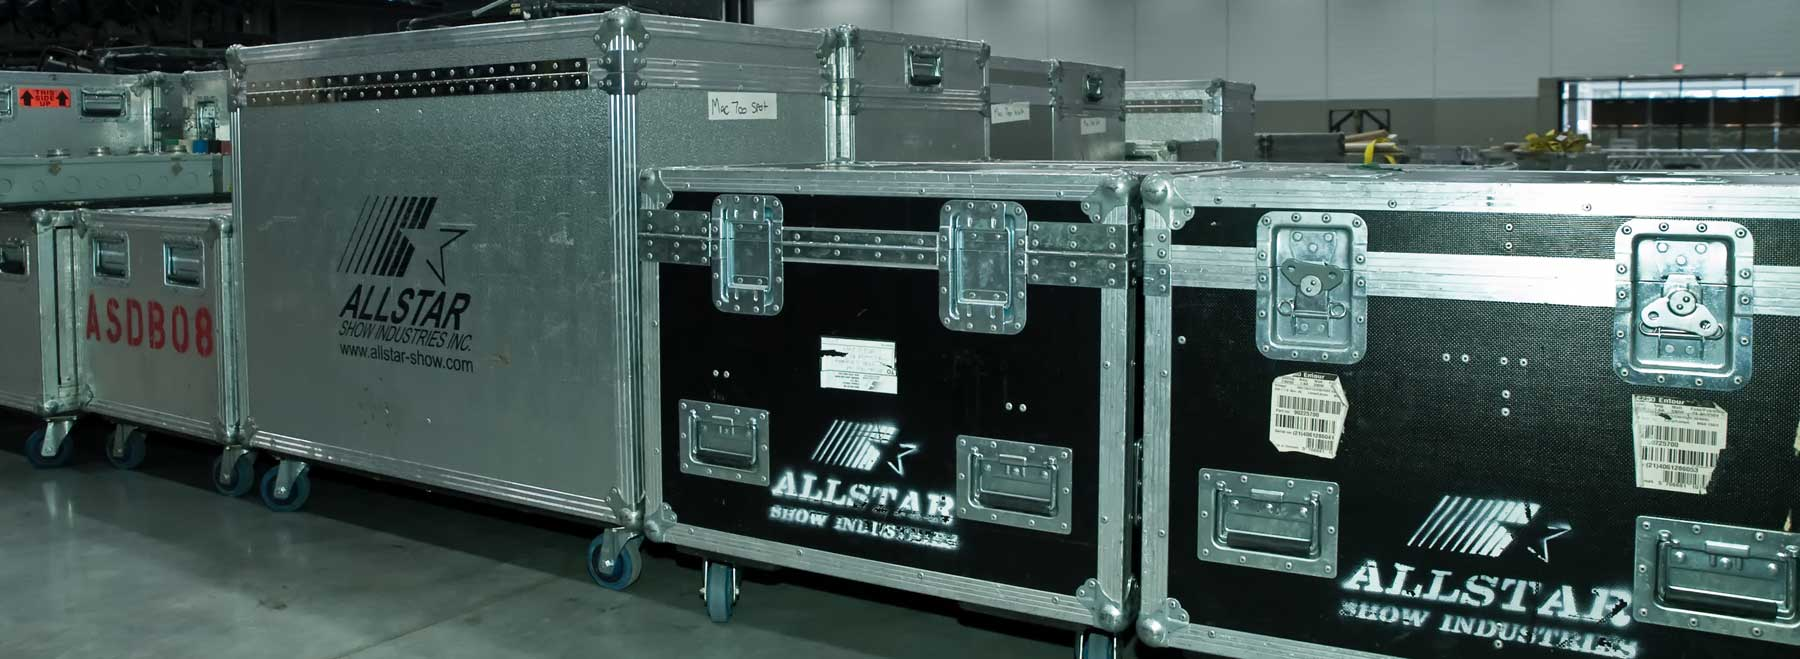 Allstar Show Industries has lots of Audio Video Lighting and Staging Equipment